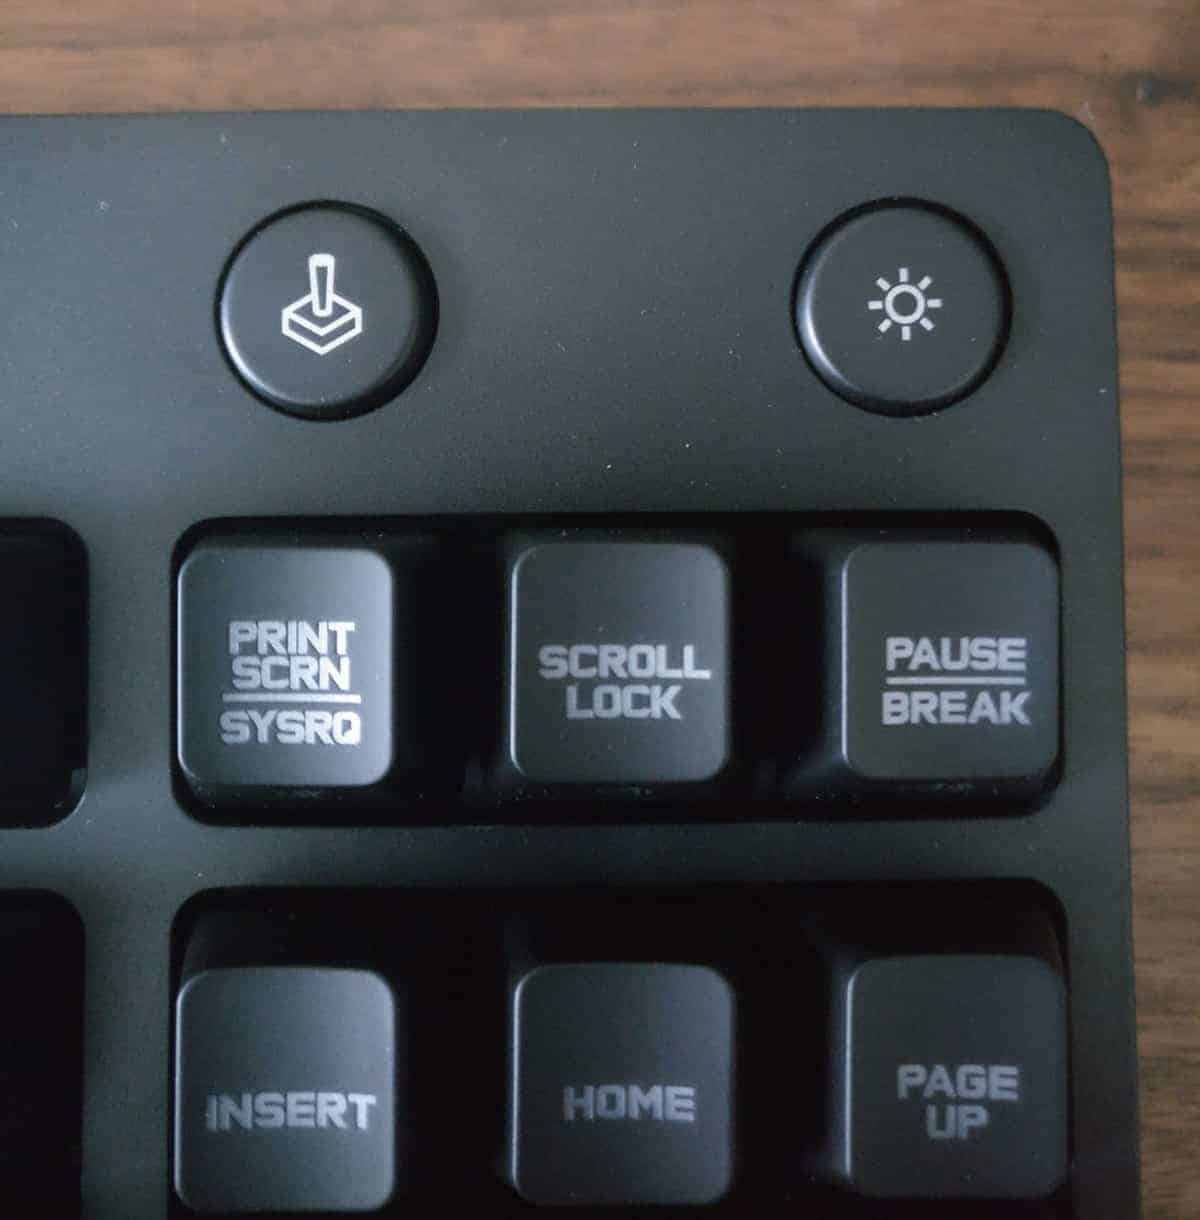 Logitech G Pro Mechanical Gaming Keyboard Review - The